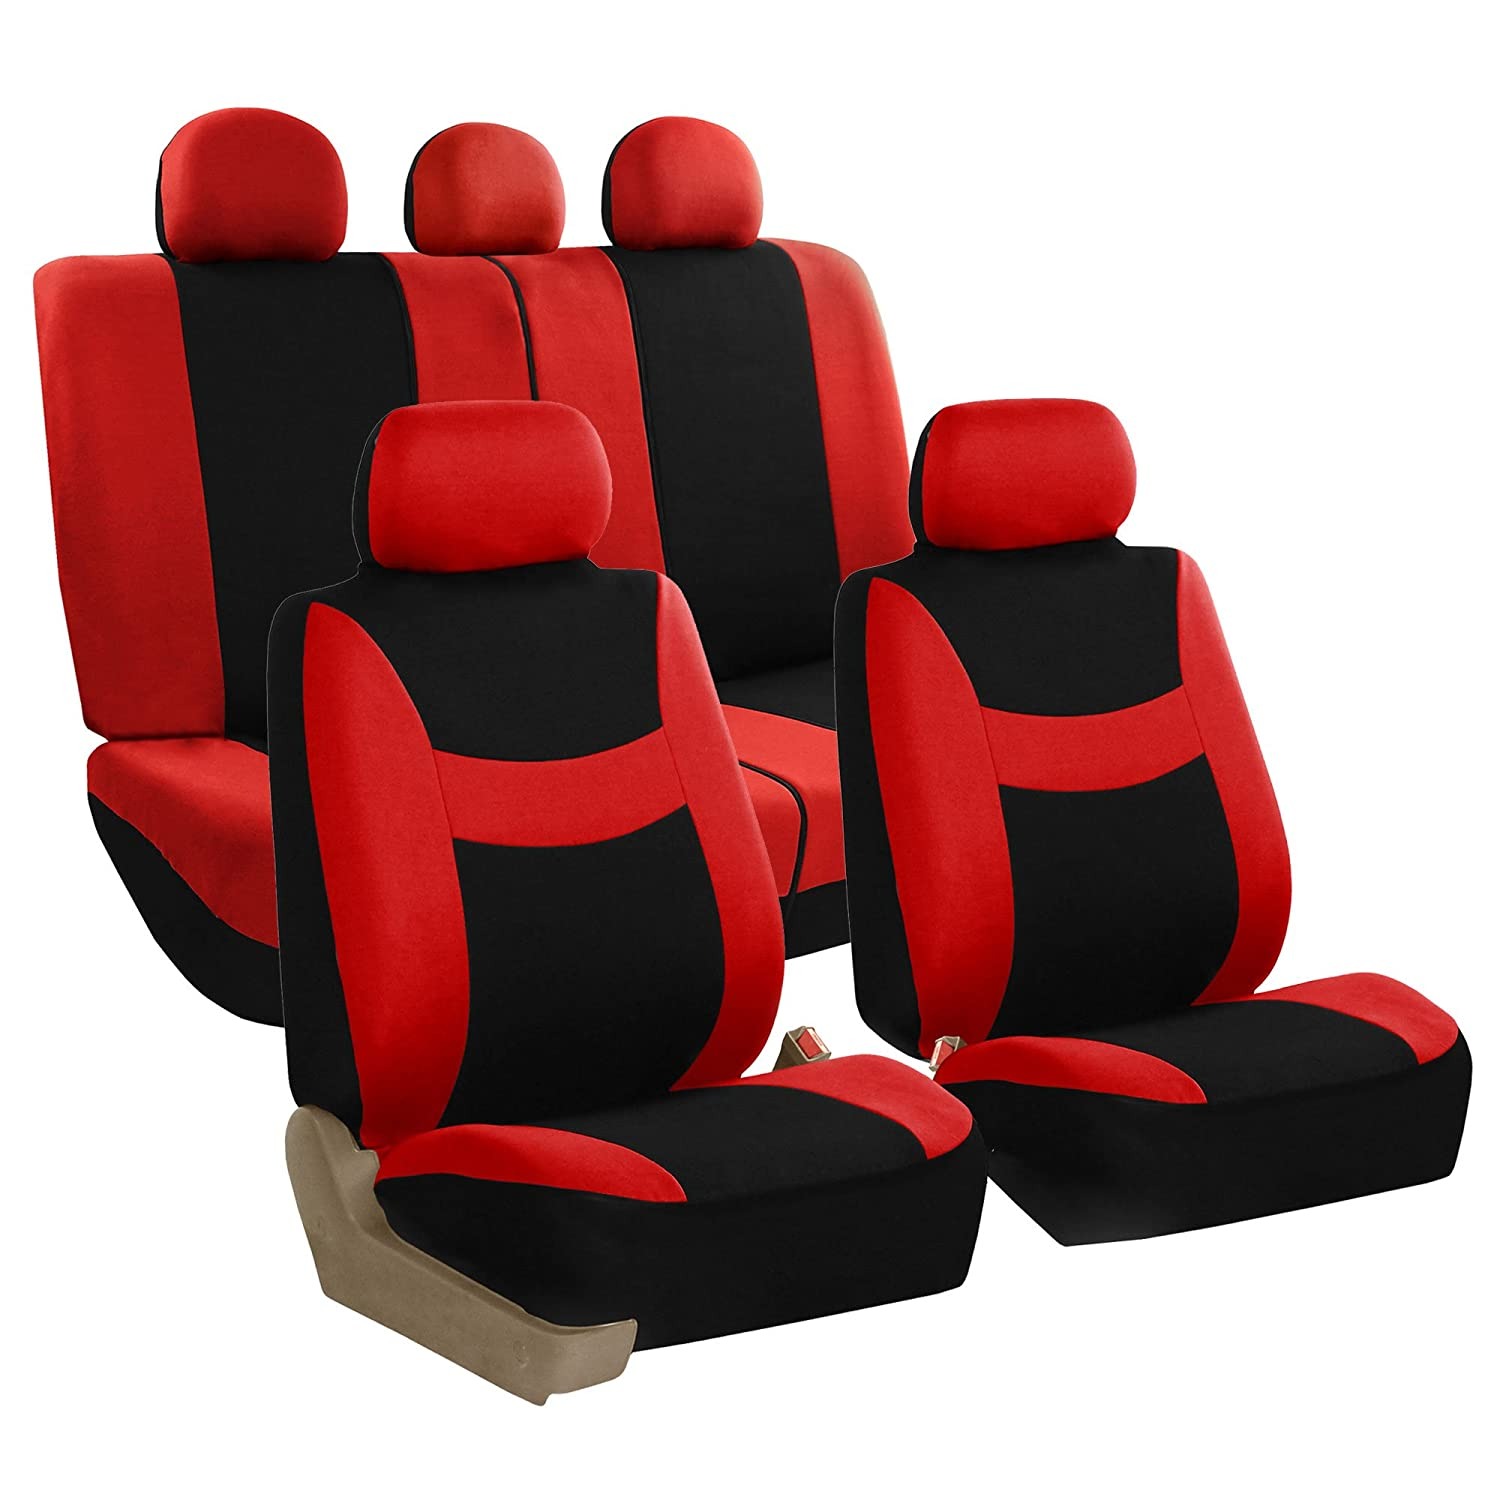 FH Group FB030BLUEBLACK115-SEAT Bucket Seat Cover and Bench Cover (Full Set Airbag Compatible with Split Bench Blue/Black) FB030BLUEBLACK115-SEAT-AVC